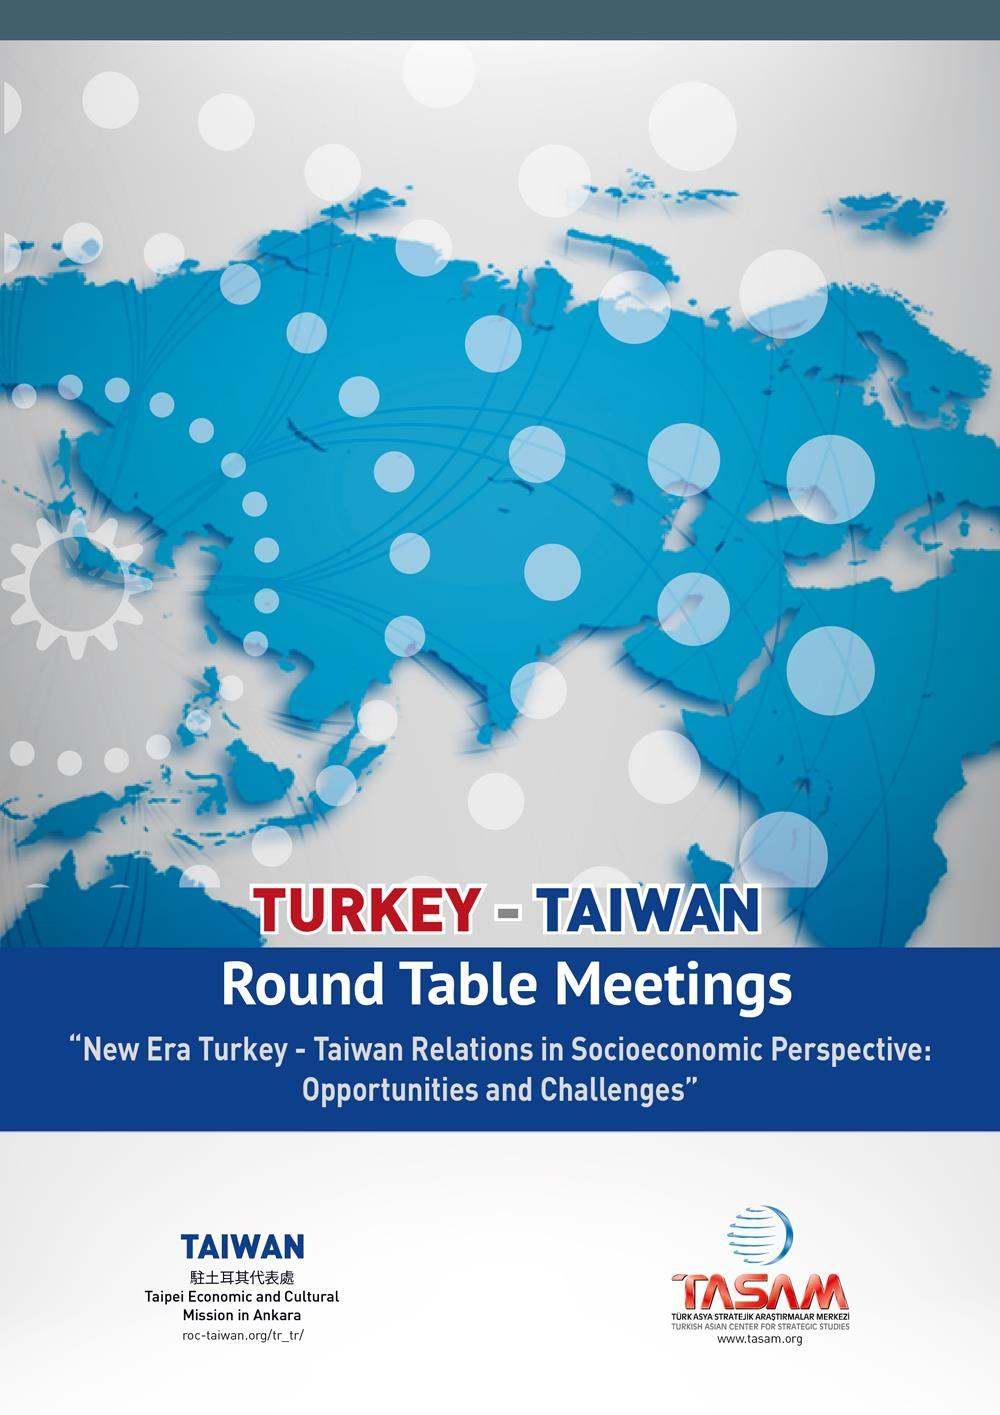 Turkey - Taiwan Round Table Meeting - 1